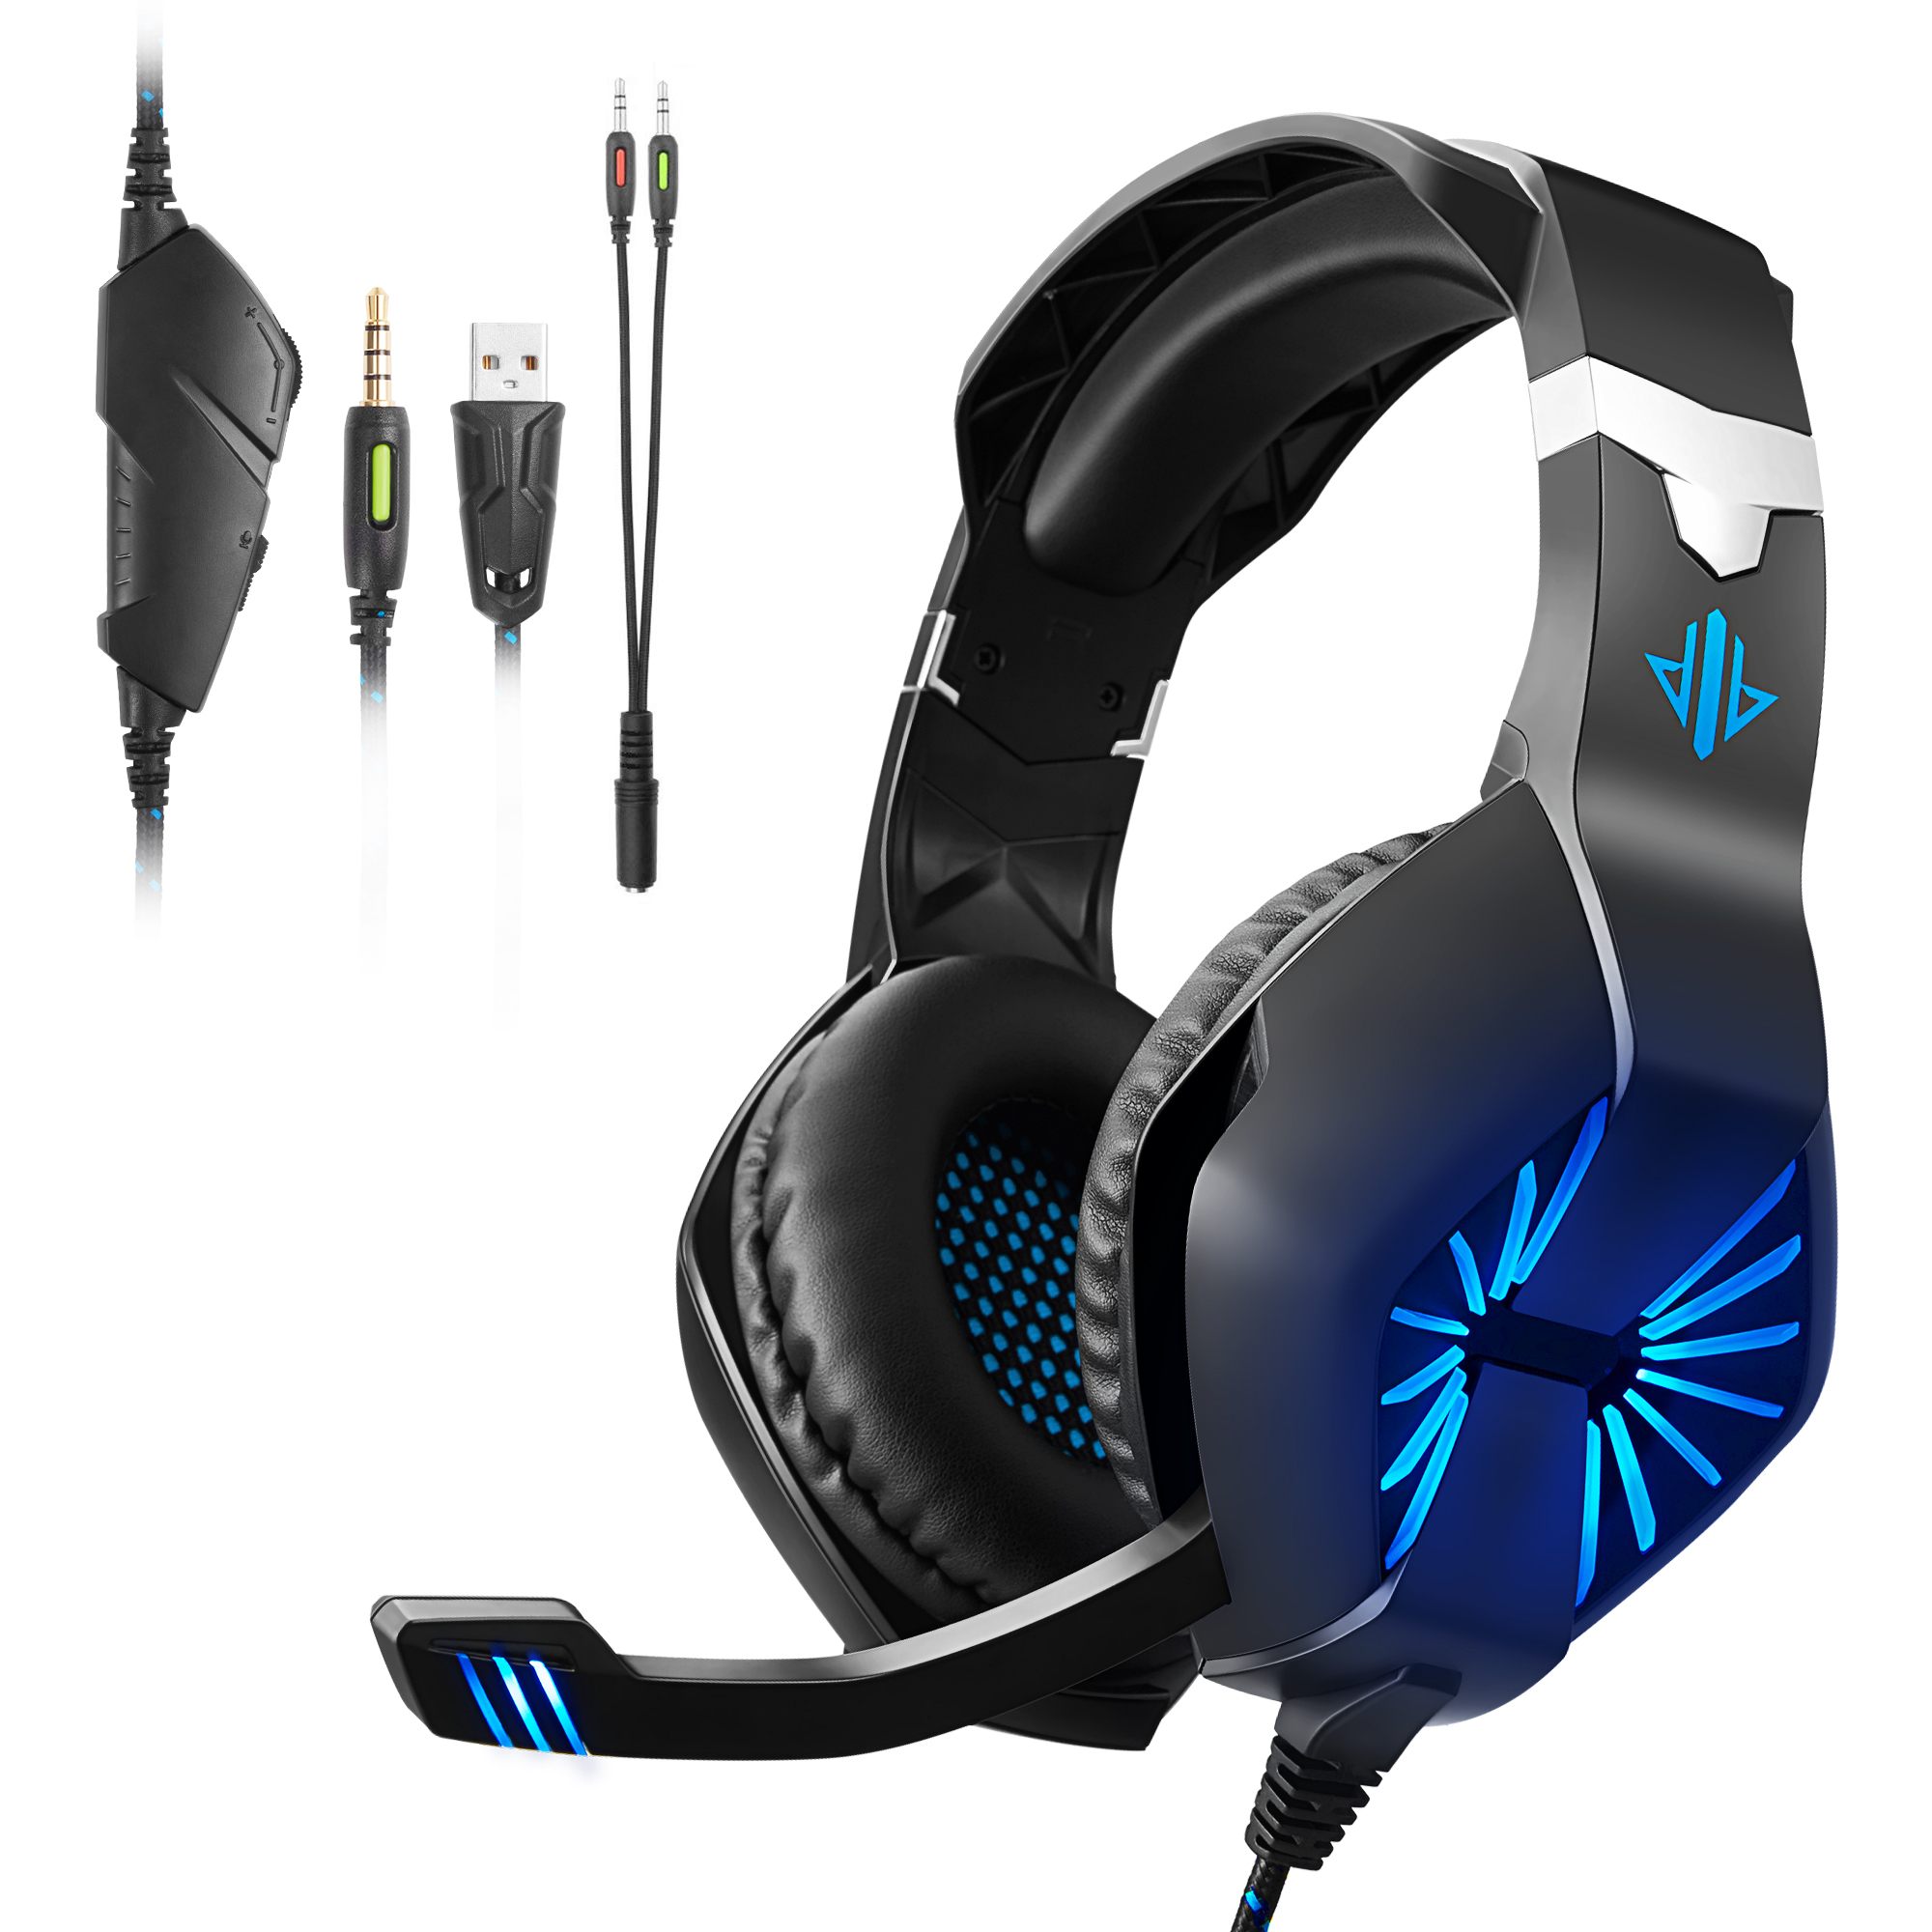 Gaming Headset with Mic for Xbox One, PS4, Nintendo Switch and PC, Surround Sound Over-Ear Gaming Headphones with Noise Cancelling Mic, LED Lights, Volume Control for Smart Phone, Laptops,Mac, iPad.